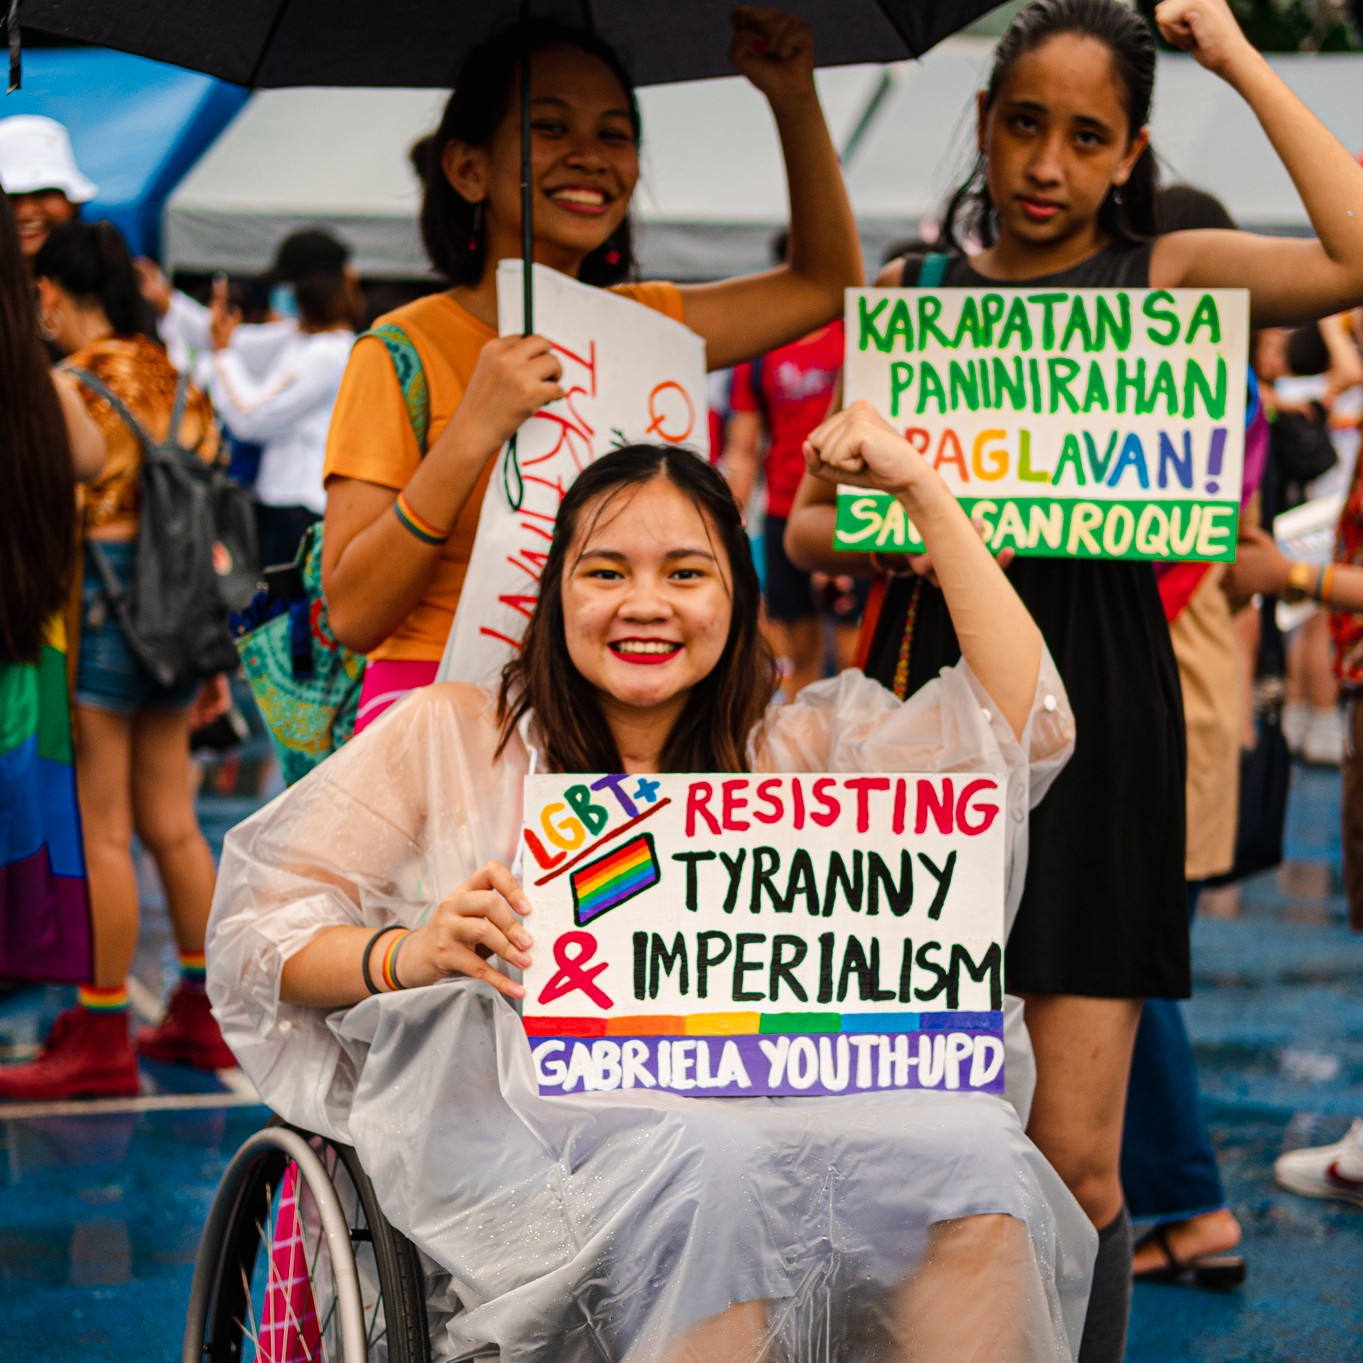 Image: Three people raising their left fists to the air. In the foreground, a wheelchair user wearing a raincoat smiles and looks to the camera. They hold a placard that says 'LGBT+ RESISTING TYRANNY & IMPERIALISM' and 'GABRIELA YOUTH-UPD' under it. Behind them to the right, a person wearing a black dress is looking to the camera and holding up a placard that says 'KARAPATAN SA PANINIRAHAN IPAGLAVAN!' and 'SAVE SAN ROQUE' under it. To their left, a person wearing a yellow shirt is smiling widely and holding another placard and a black umbrella in their right hand.